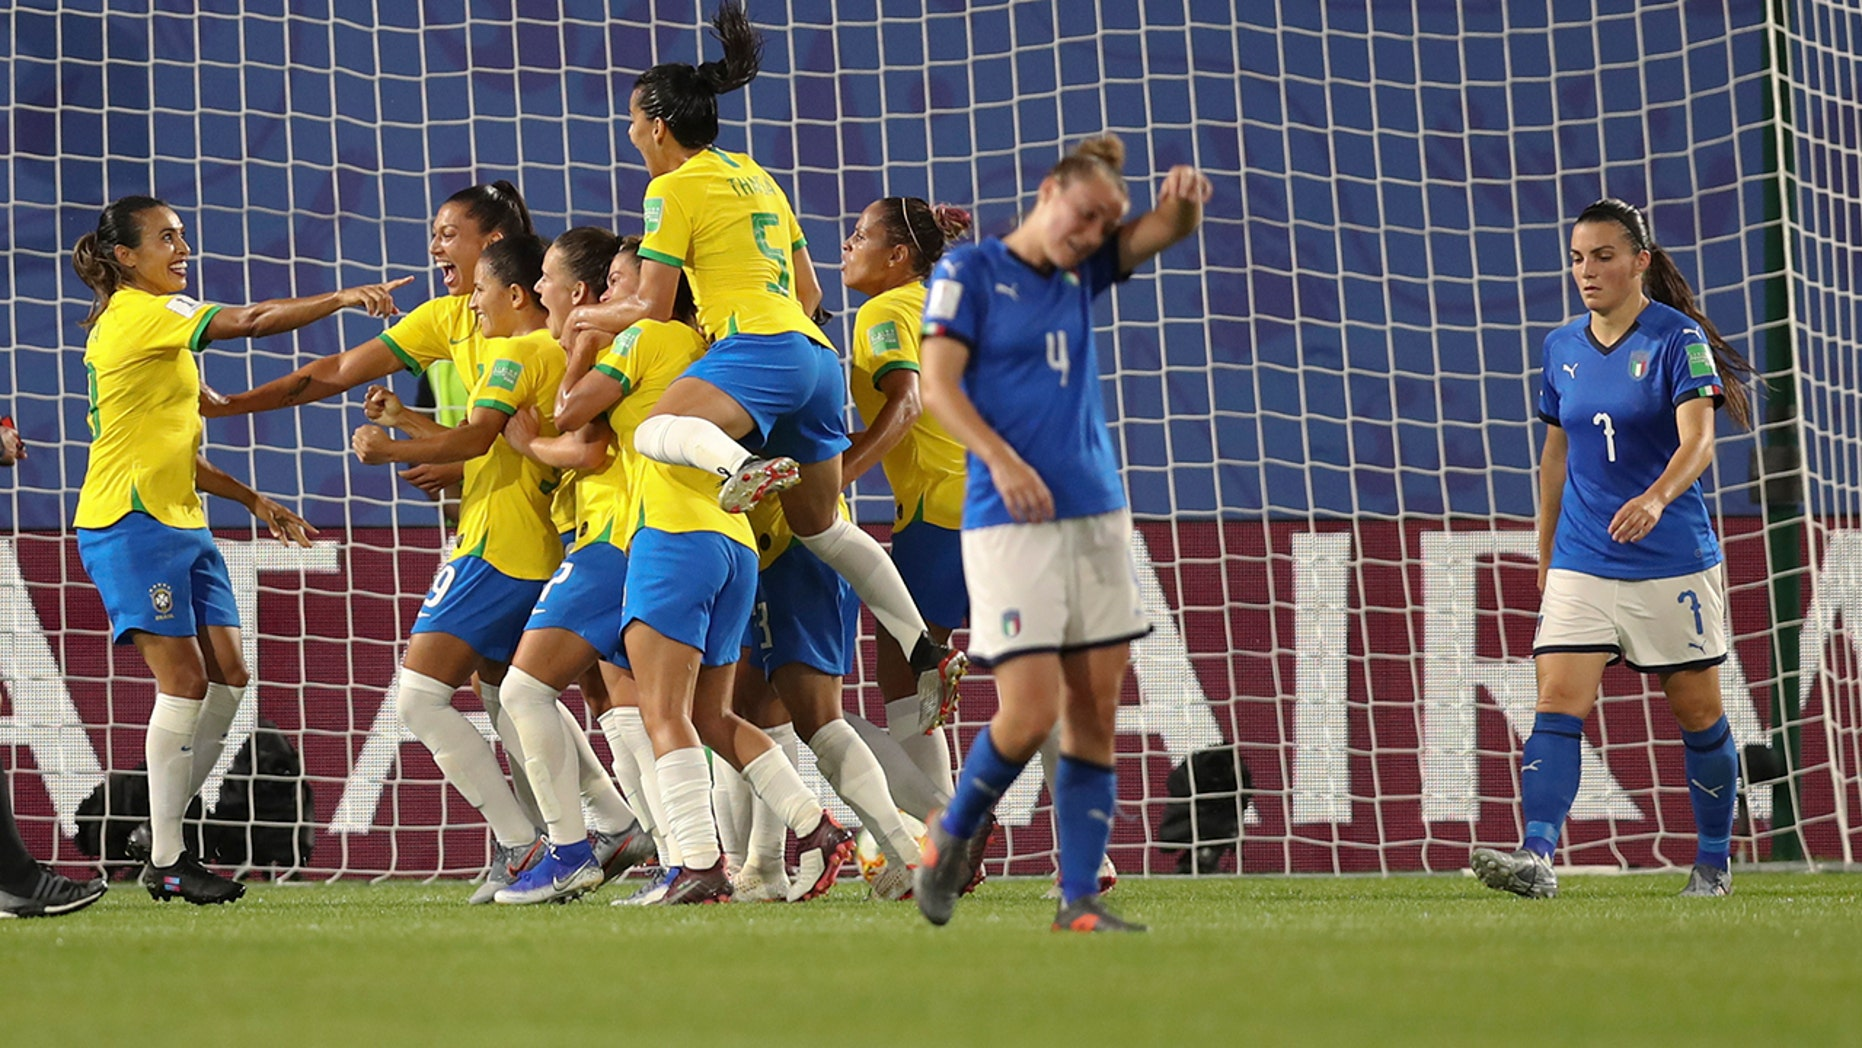 Brazil's Marta, left, celebrates after scoring her side's first goal with a penalty kick during the Women's World Cup Group C soccer match between Italy and Brazil at the Stade du Hainaut in Valenciennes, France, Tuesday, June 18, 2019. (AP Photo/Francisco Seco)